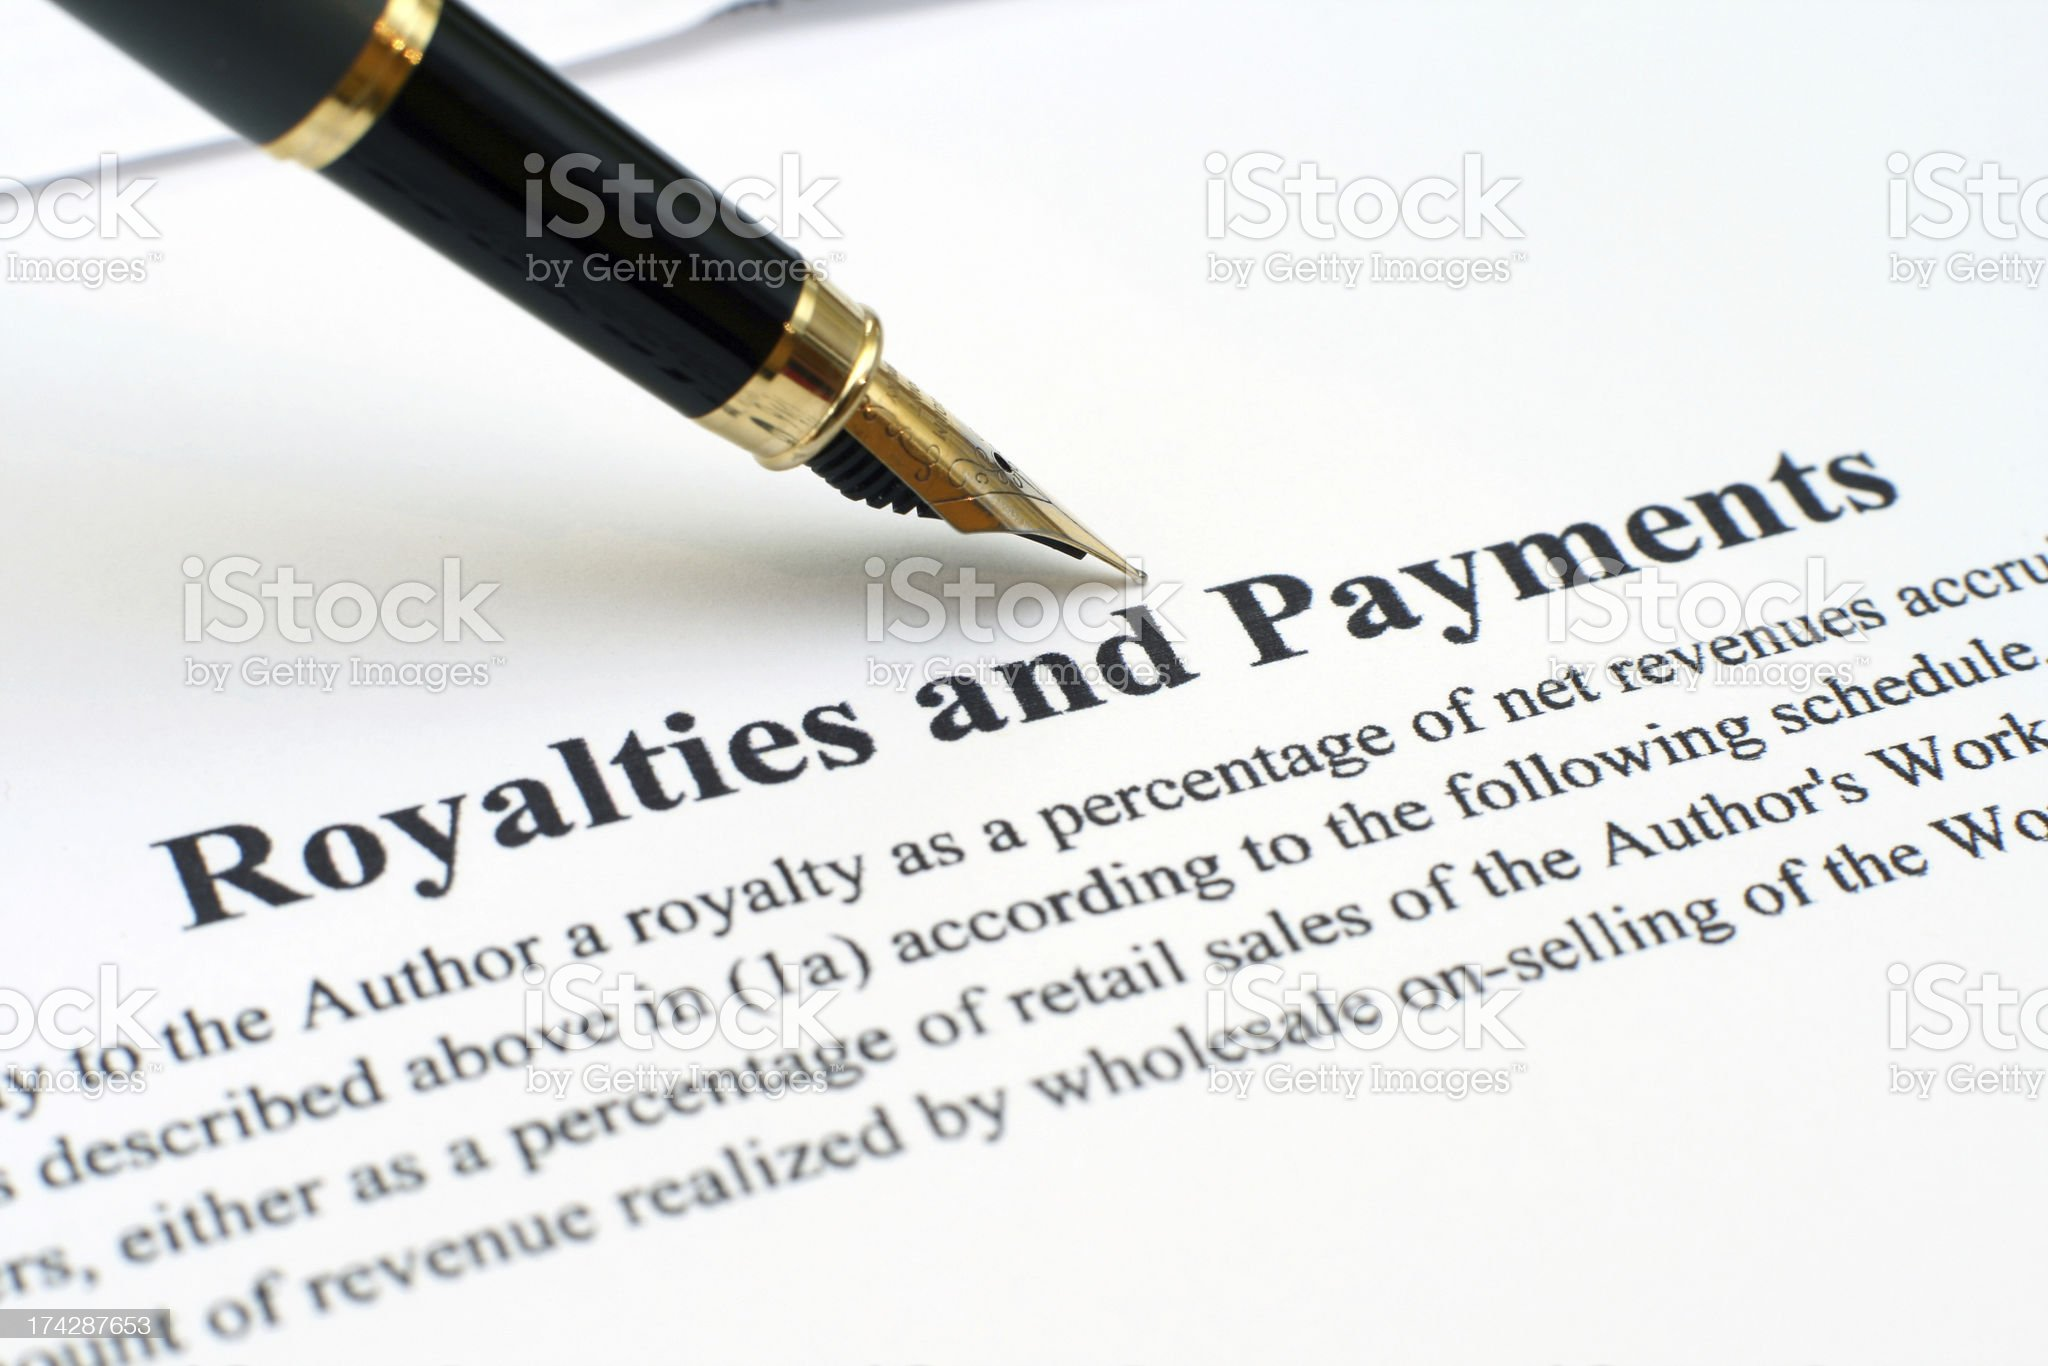 Royalties and payments royalty-free stock photo